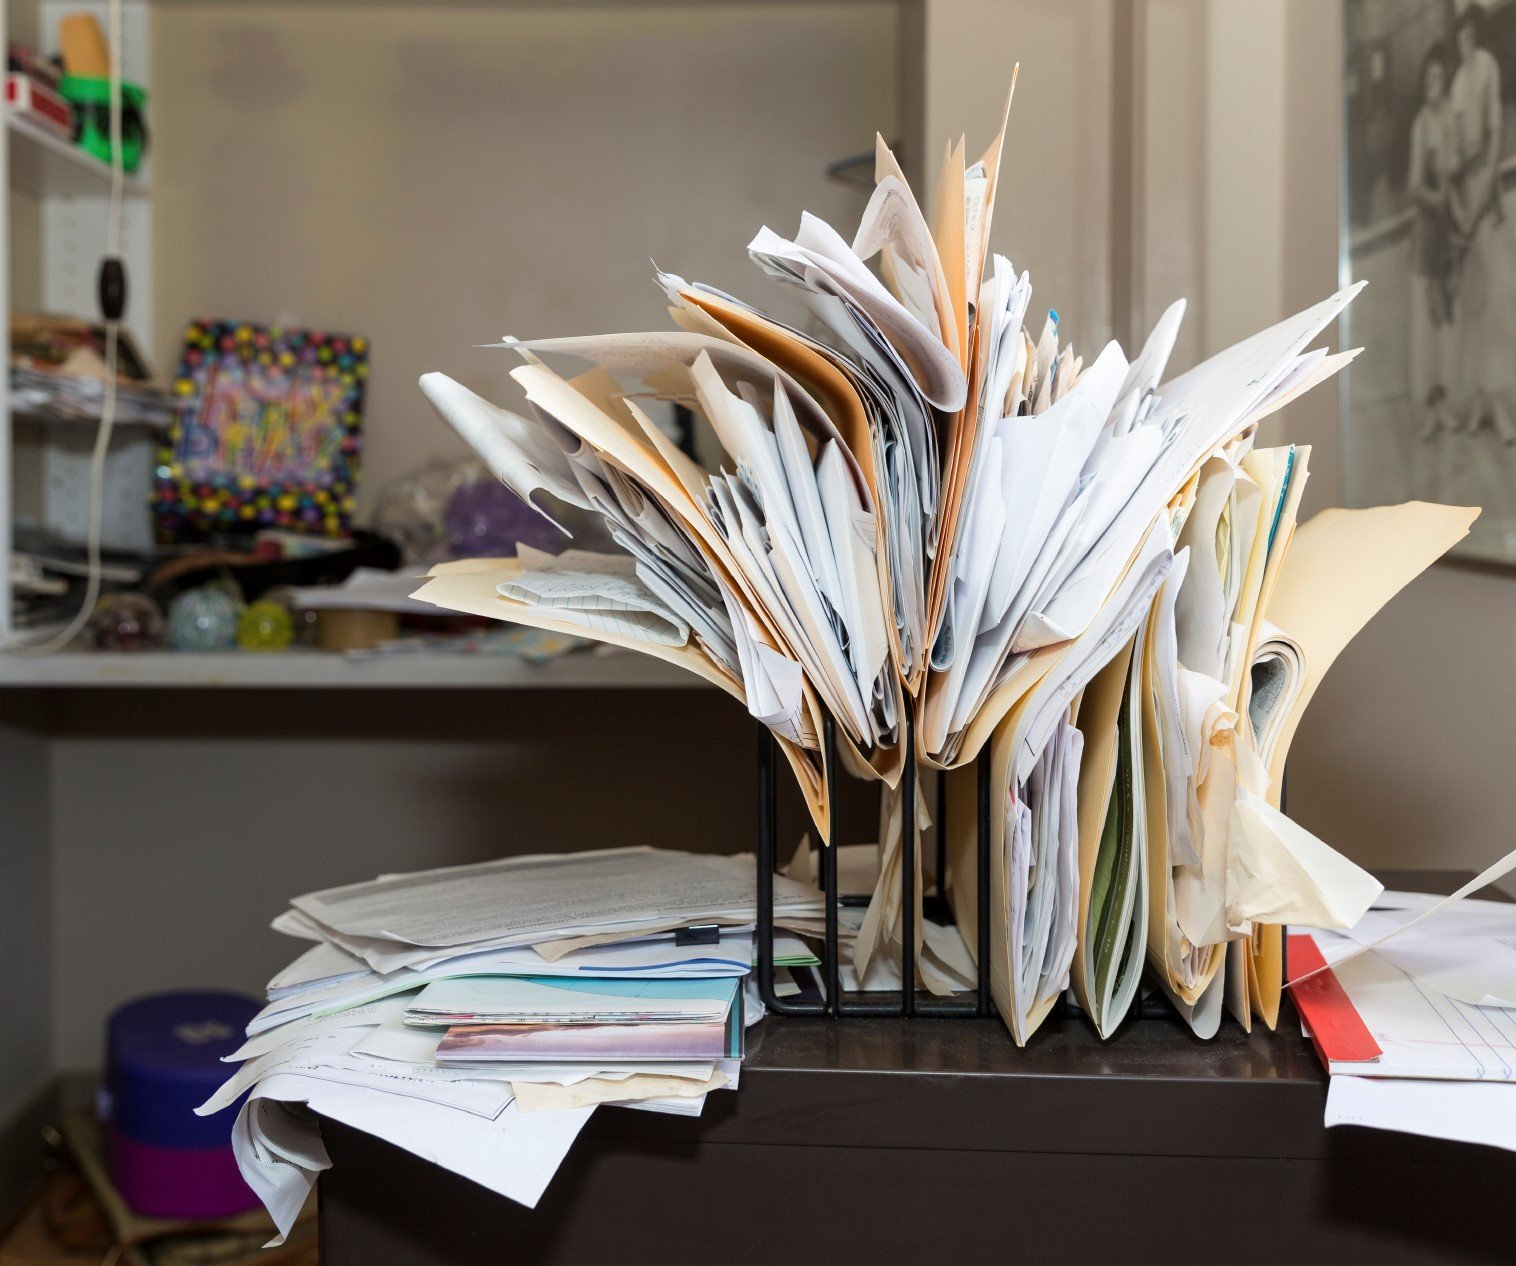 Exceptionnel Use A Professional Organizer If You Have Too Much Paperwork